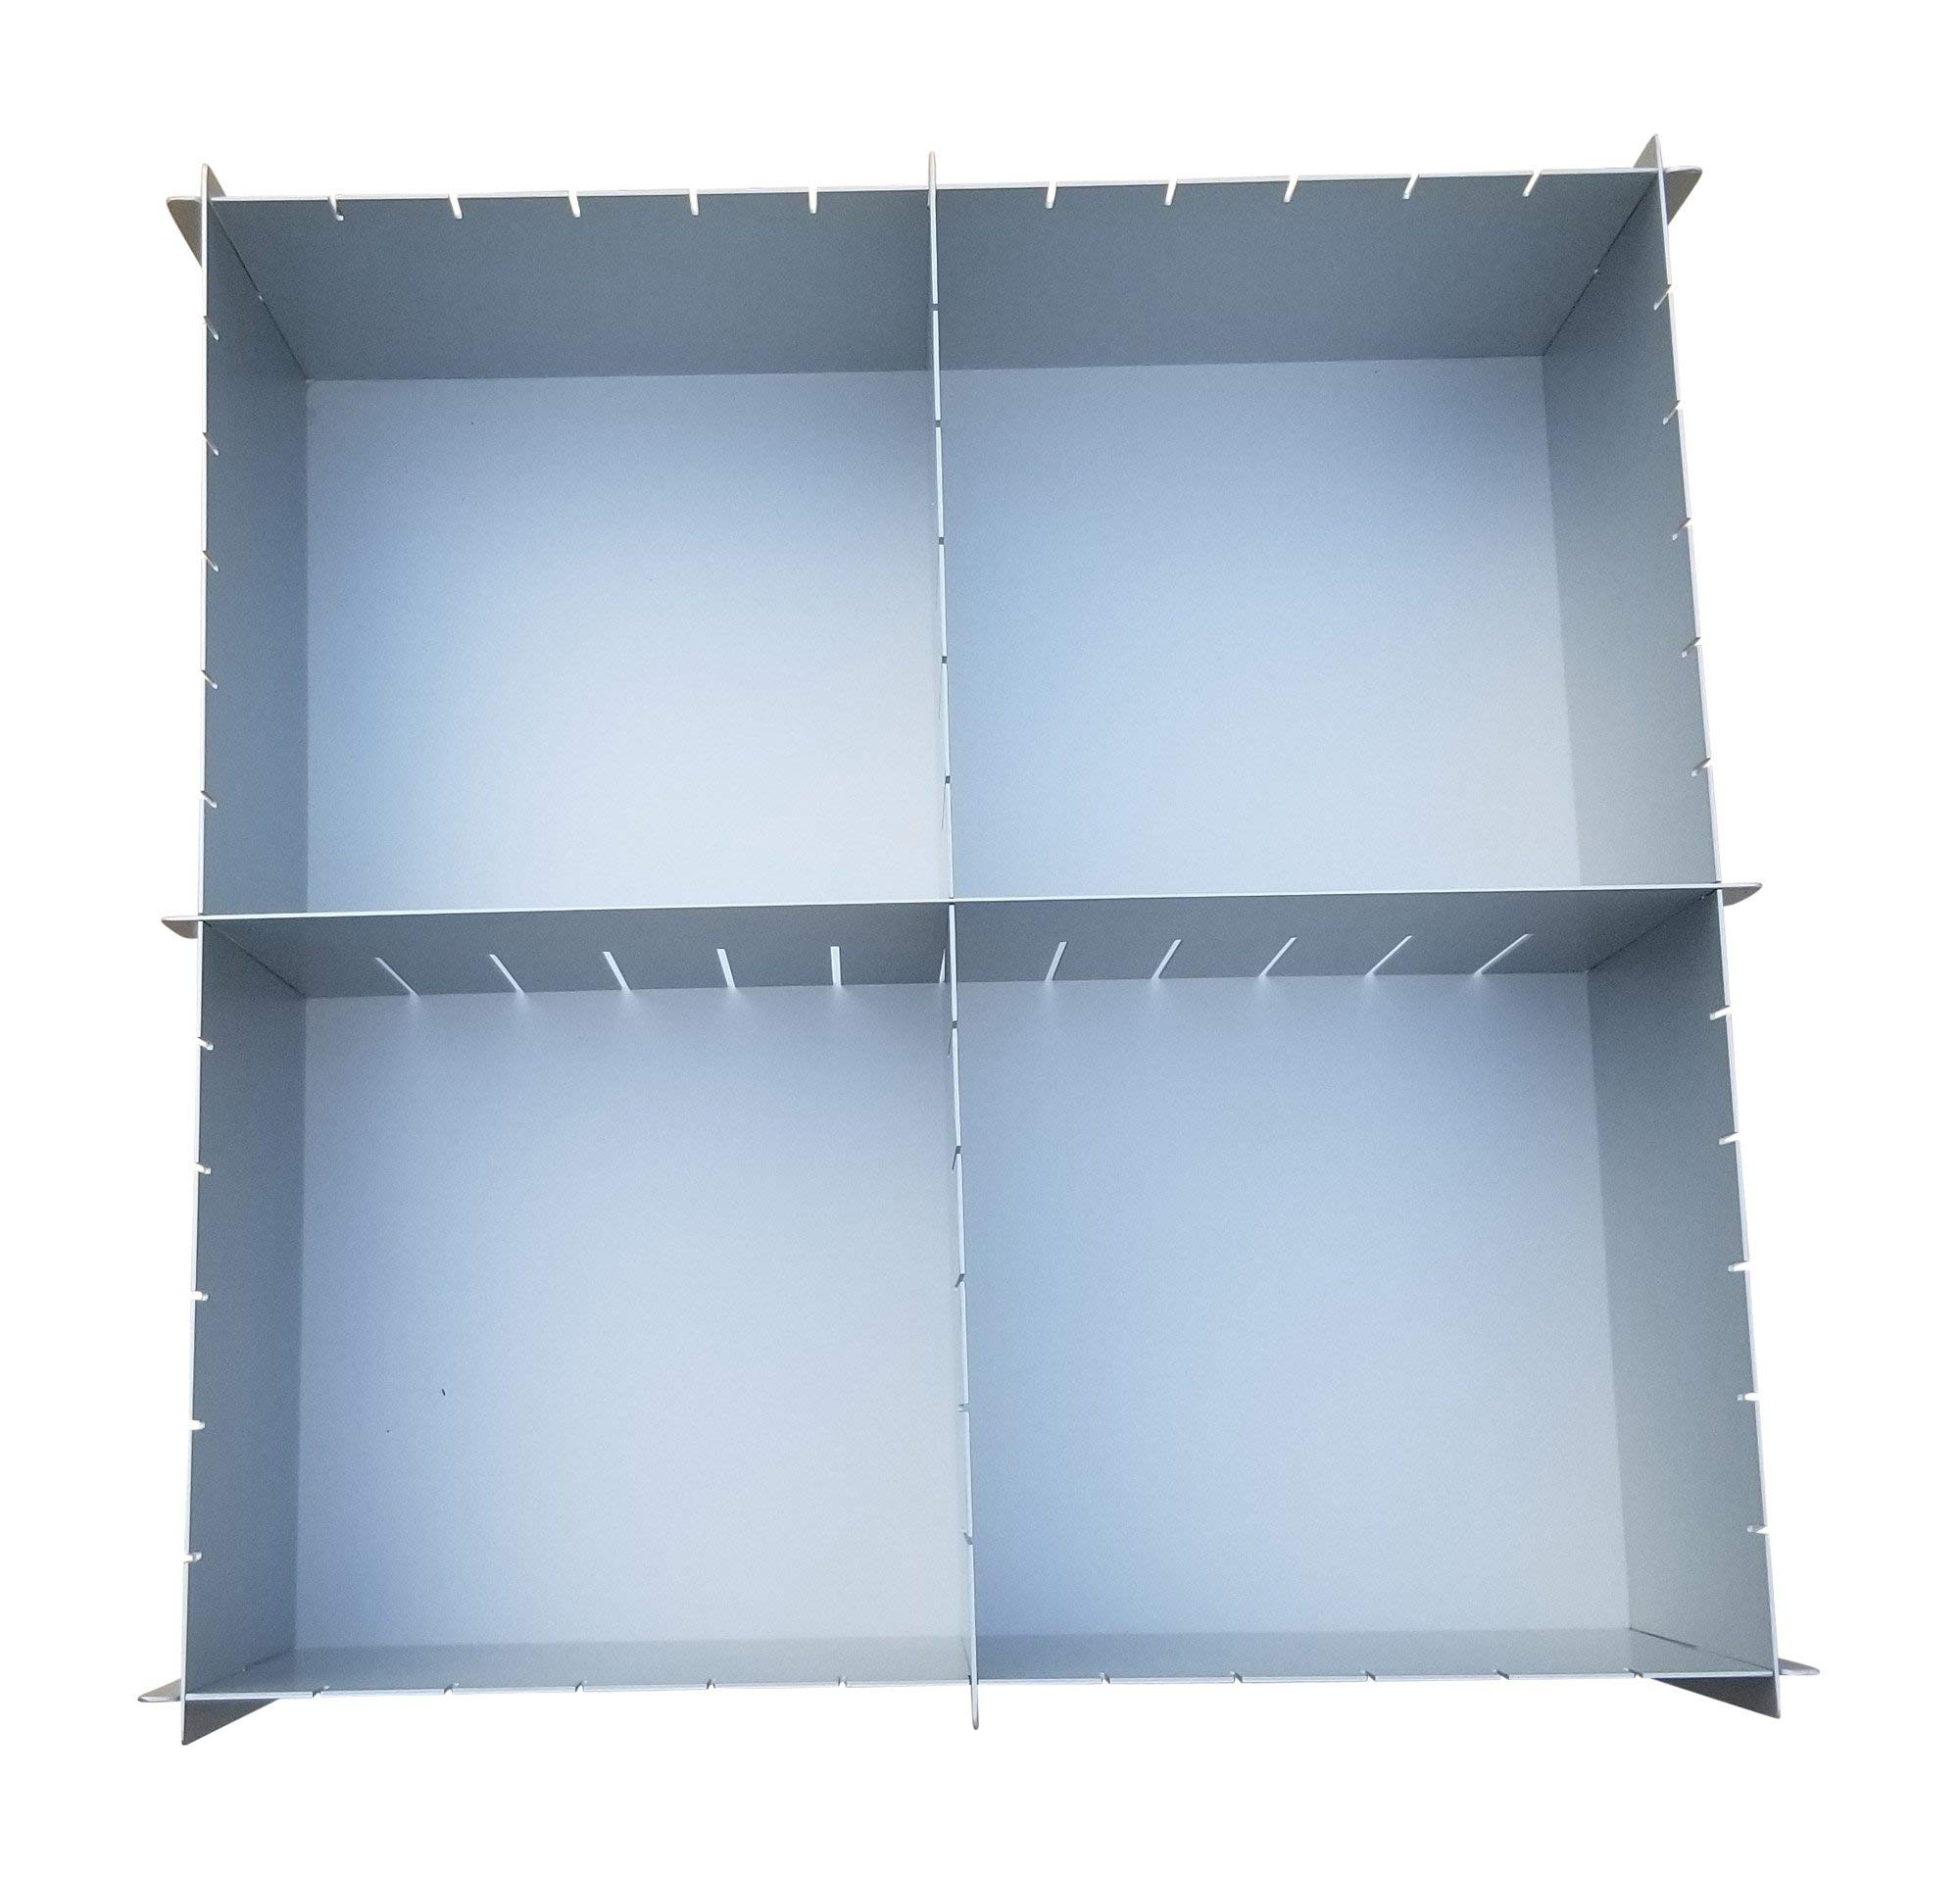 12'' x 4'' Deep Multisize Cake Pan With Extra Set Of Dividers - 4 Dividers Total - By H&L DesignWare by H&L DesignWare (Image #6)